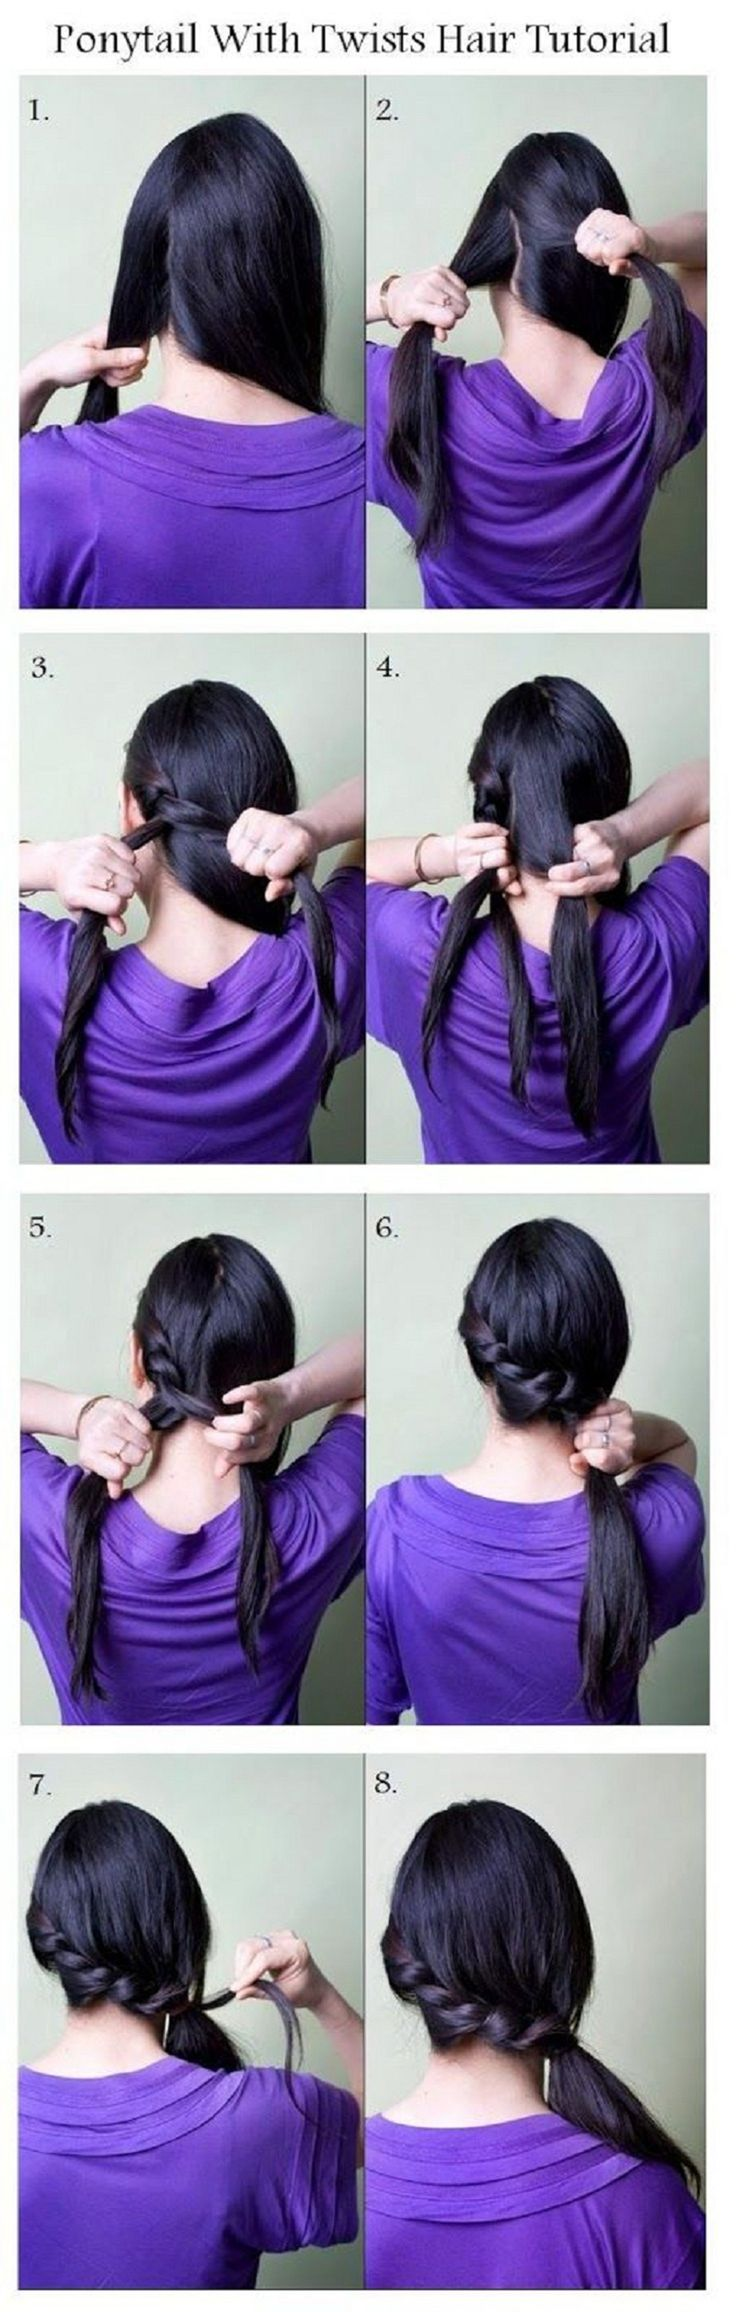 hair styles for long hair. @Karenna Fernandez i feel like this would be pretty for your hair for the wedding, with curls in it :)